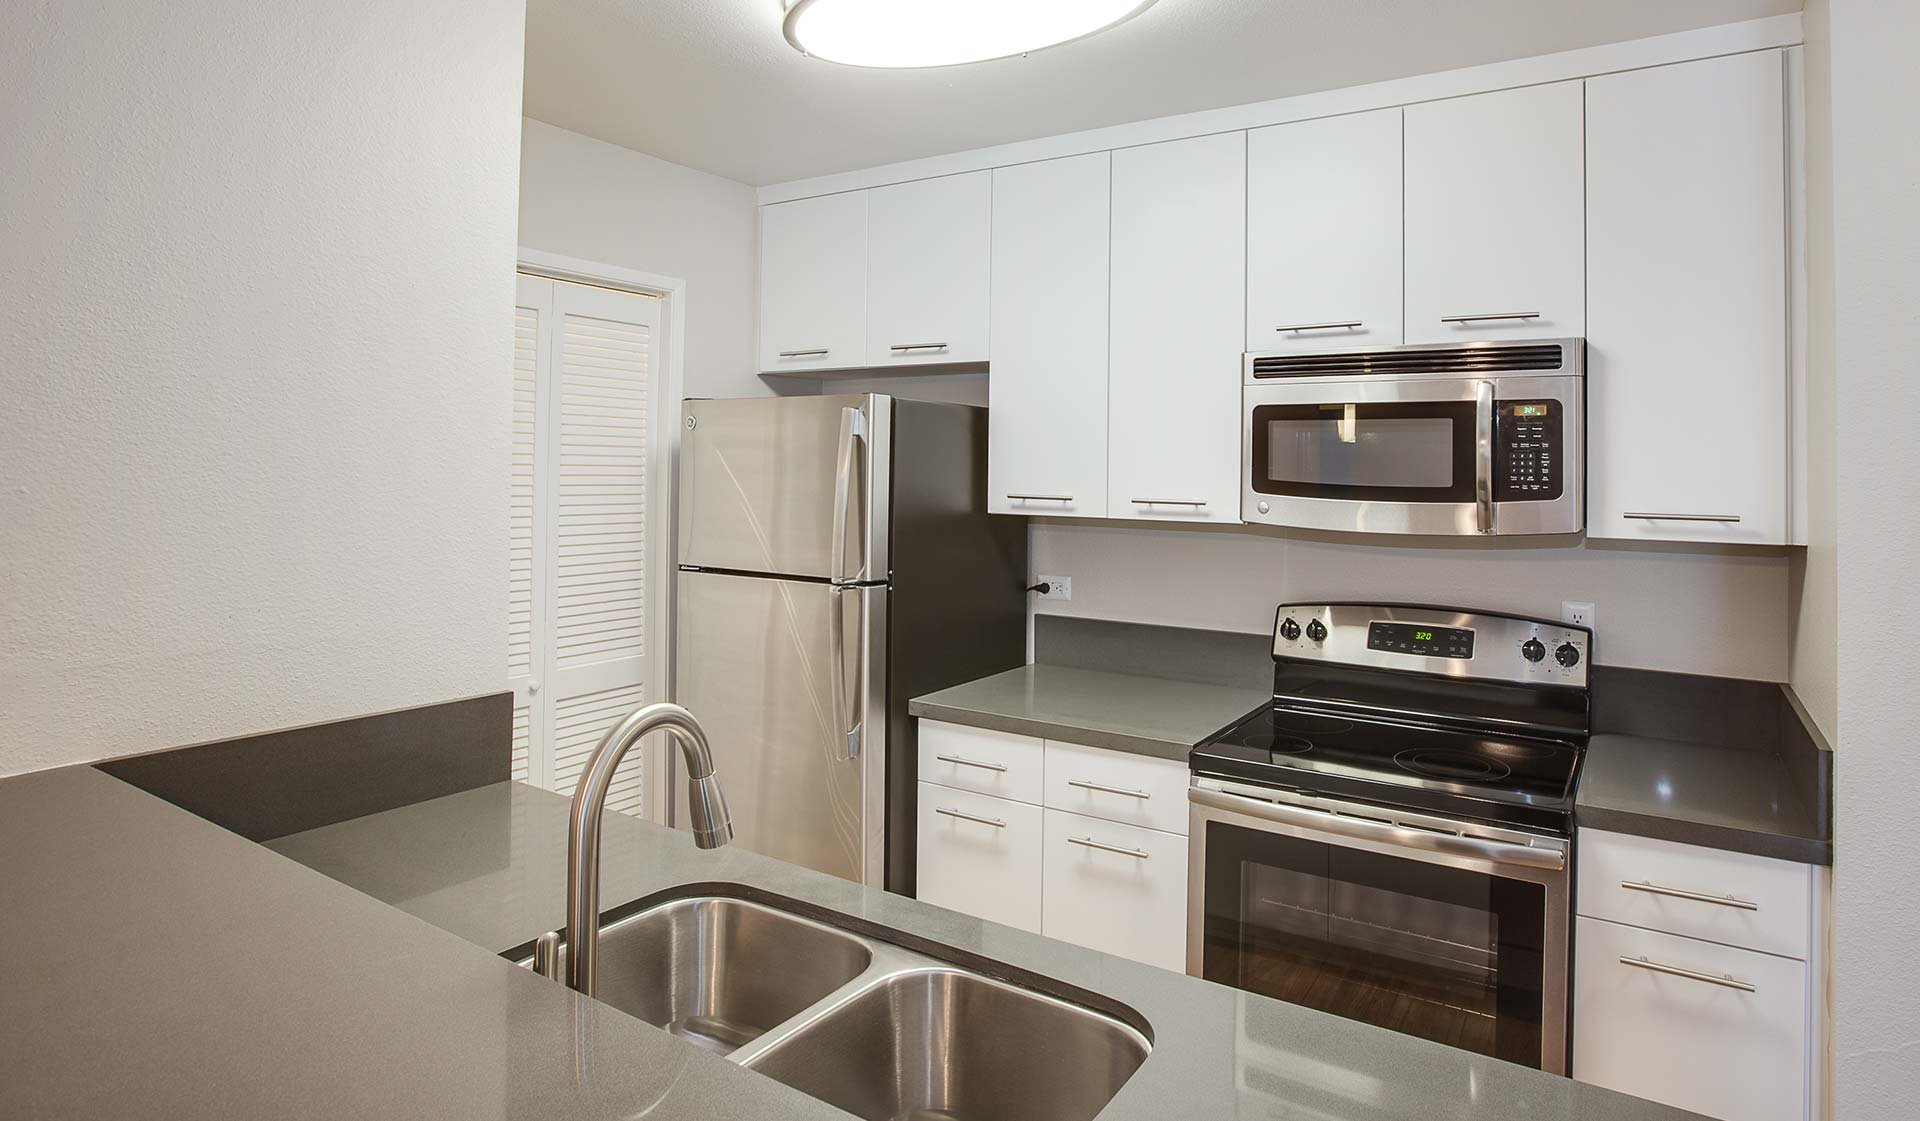 Villas of Pasadena Apartment Homes | Kitchen Interior